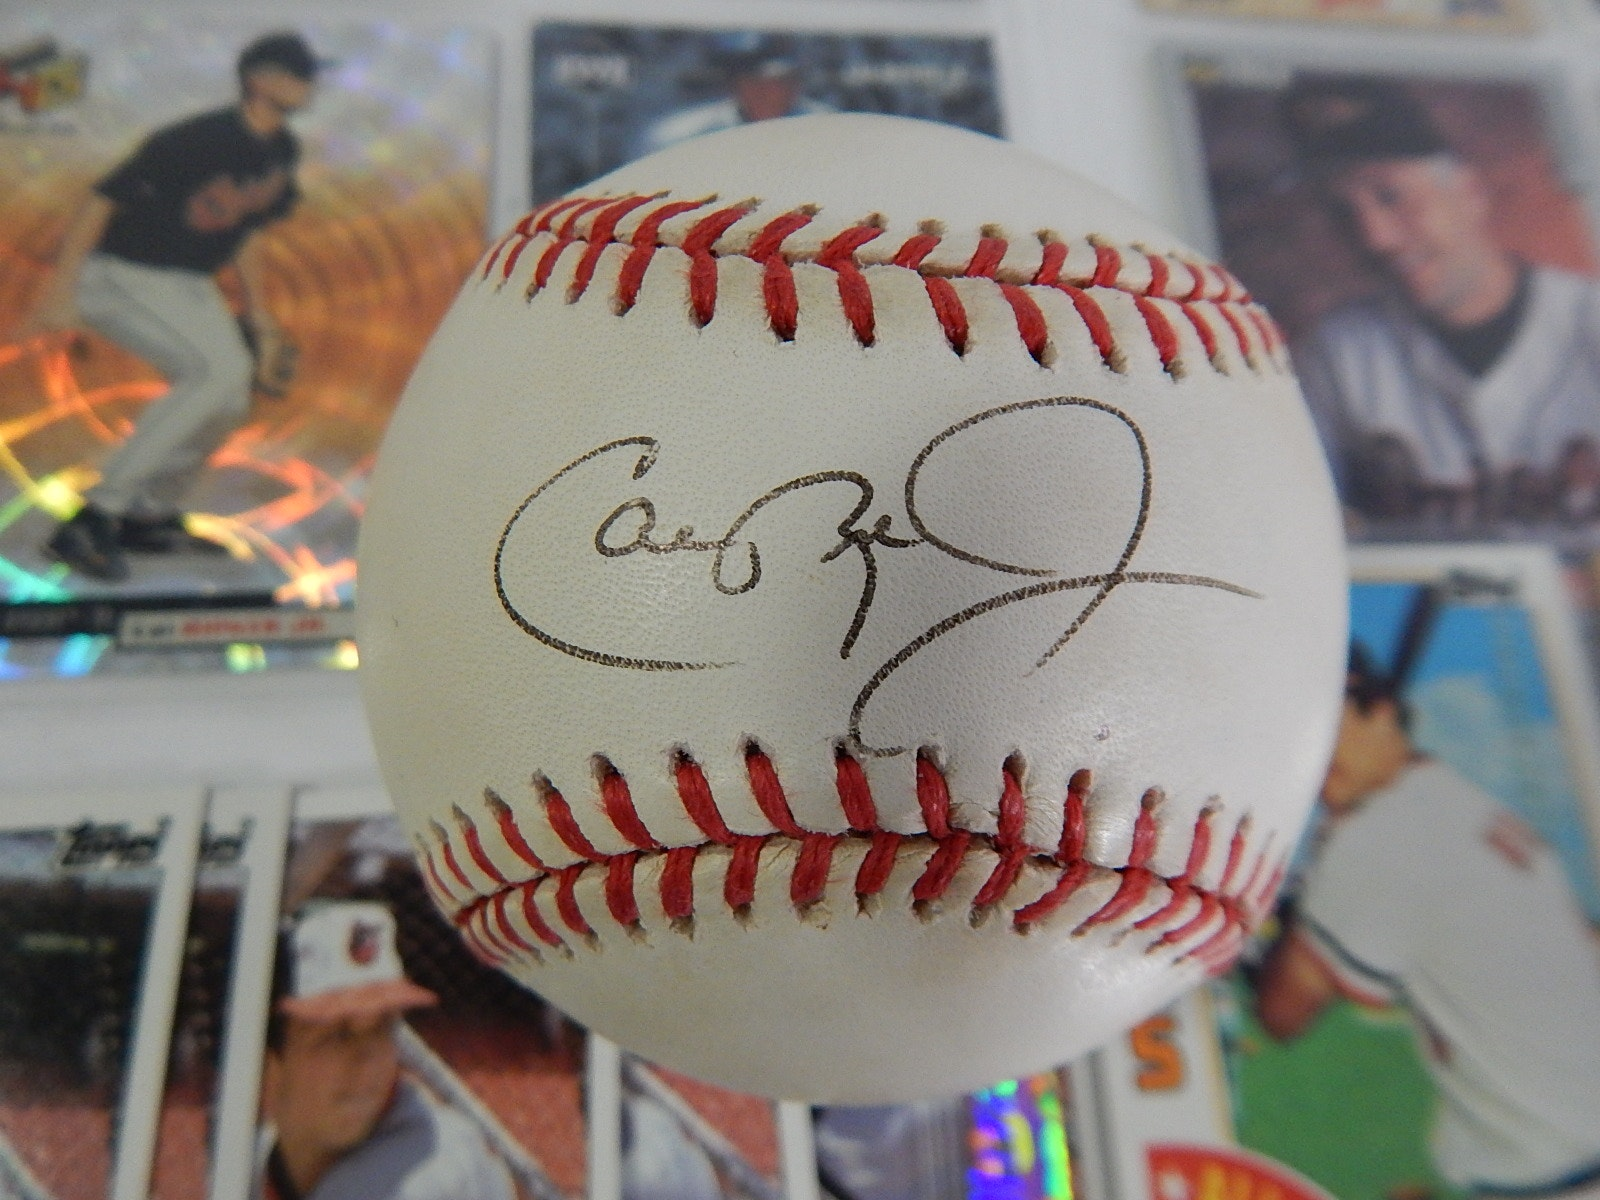 (HOF) Cal Ripken Jr. Signed Baseball and Card and Memorabilia Collection